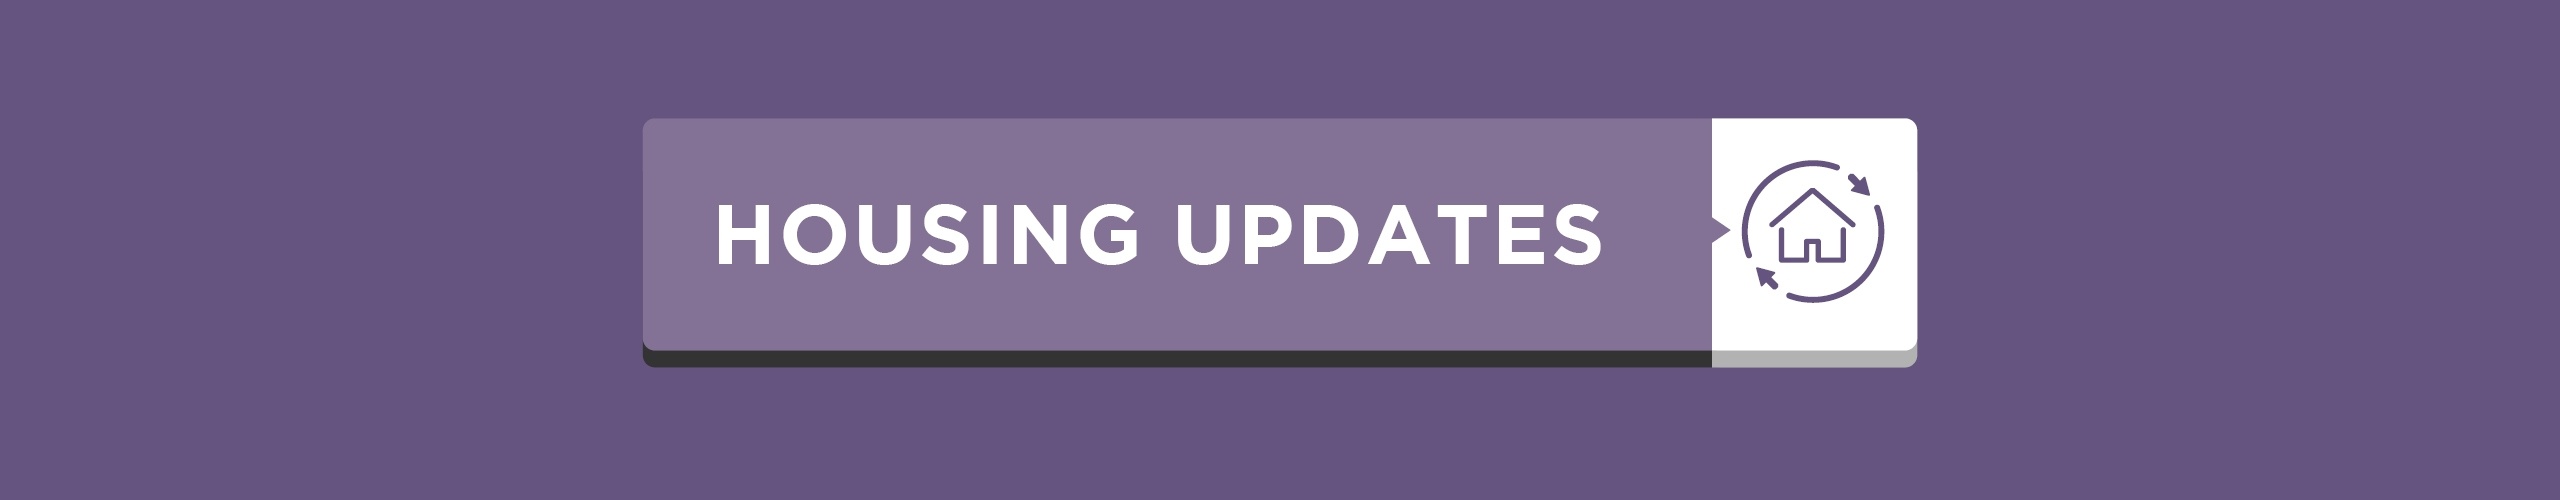 Housing Updates Covid Banner